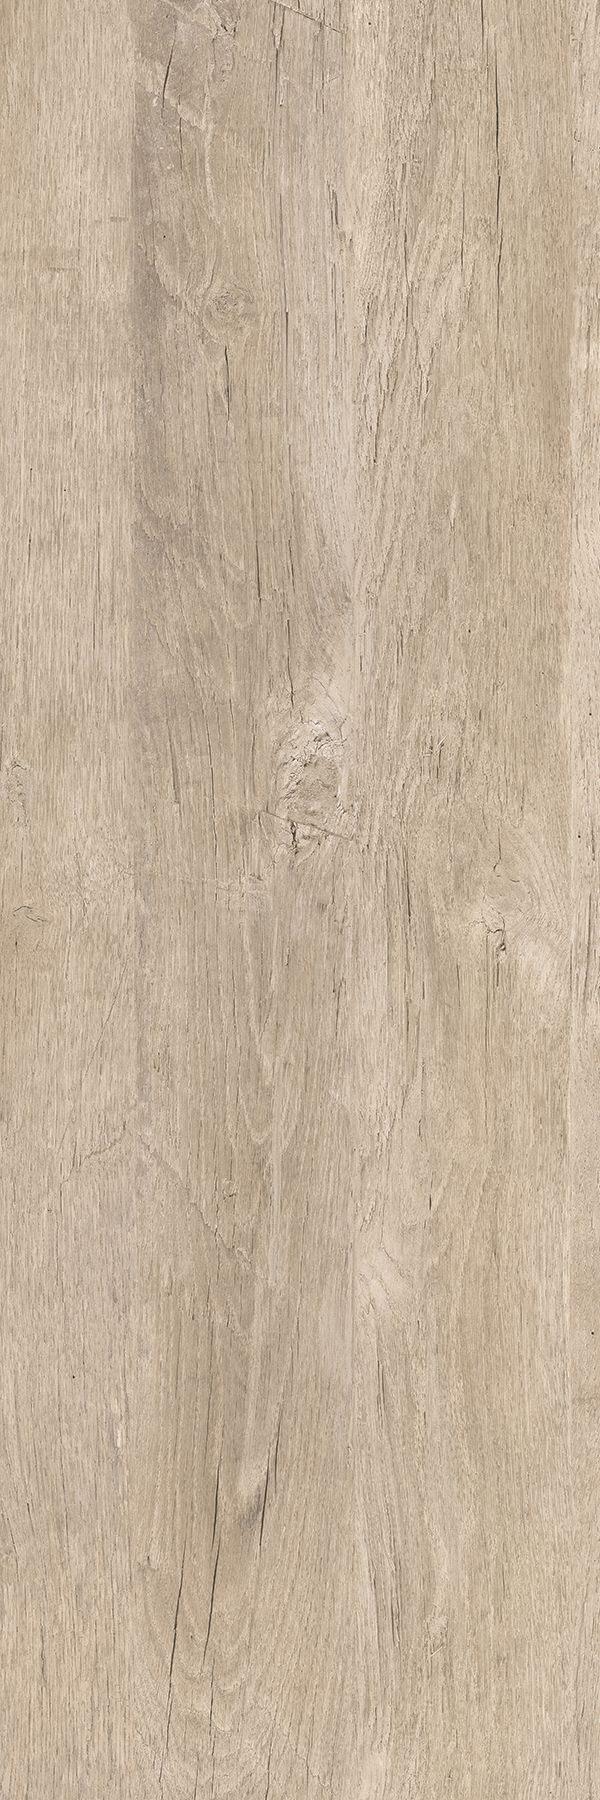 Best 25 wood texture ideas on pinterest wooden floor for Carrelage exterieur imitation bois lapeyre